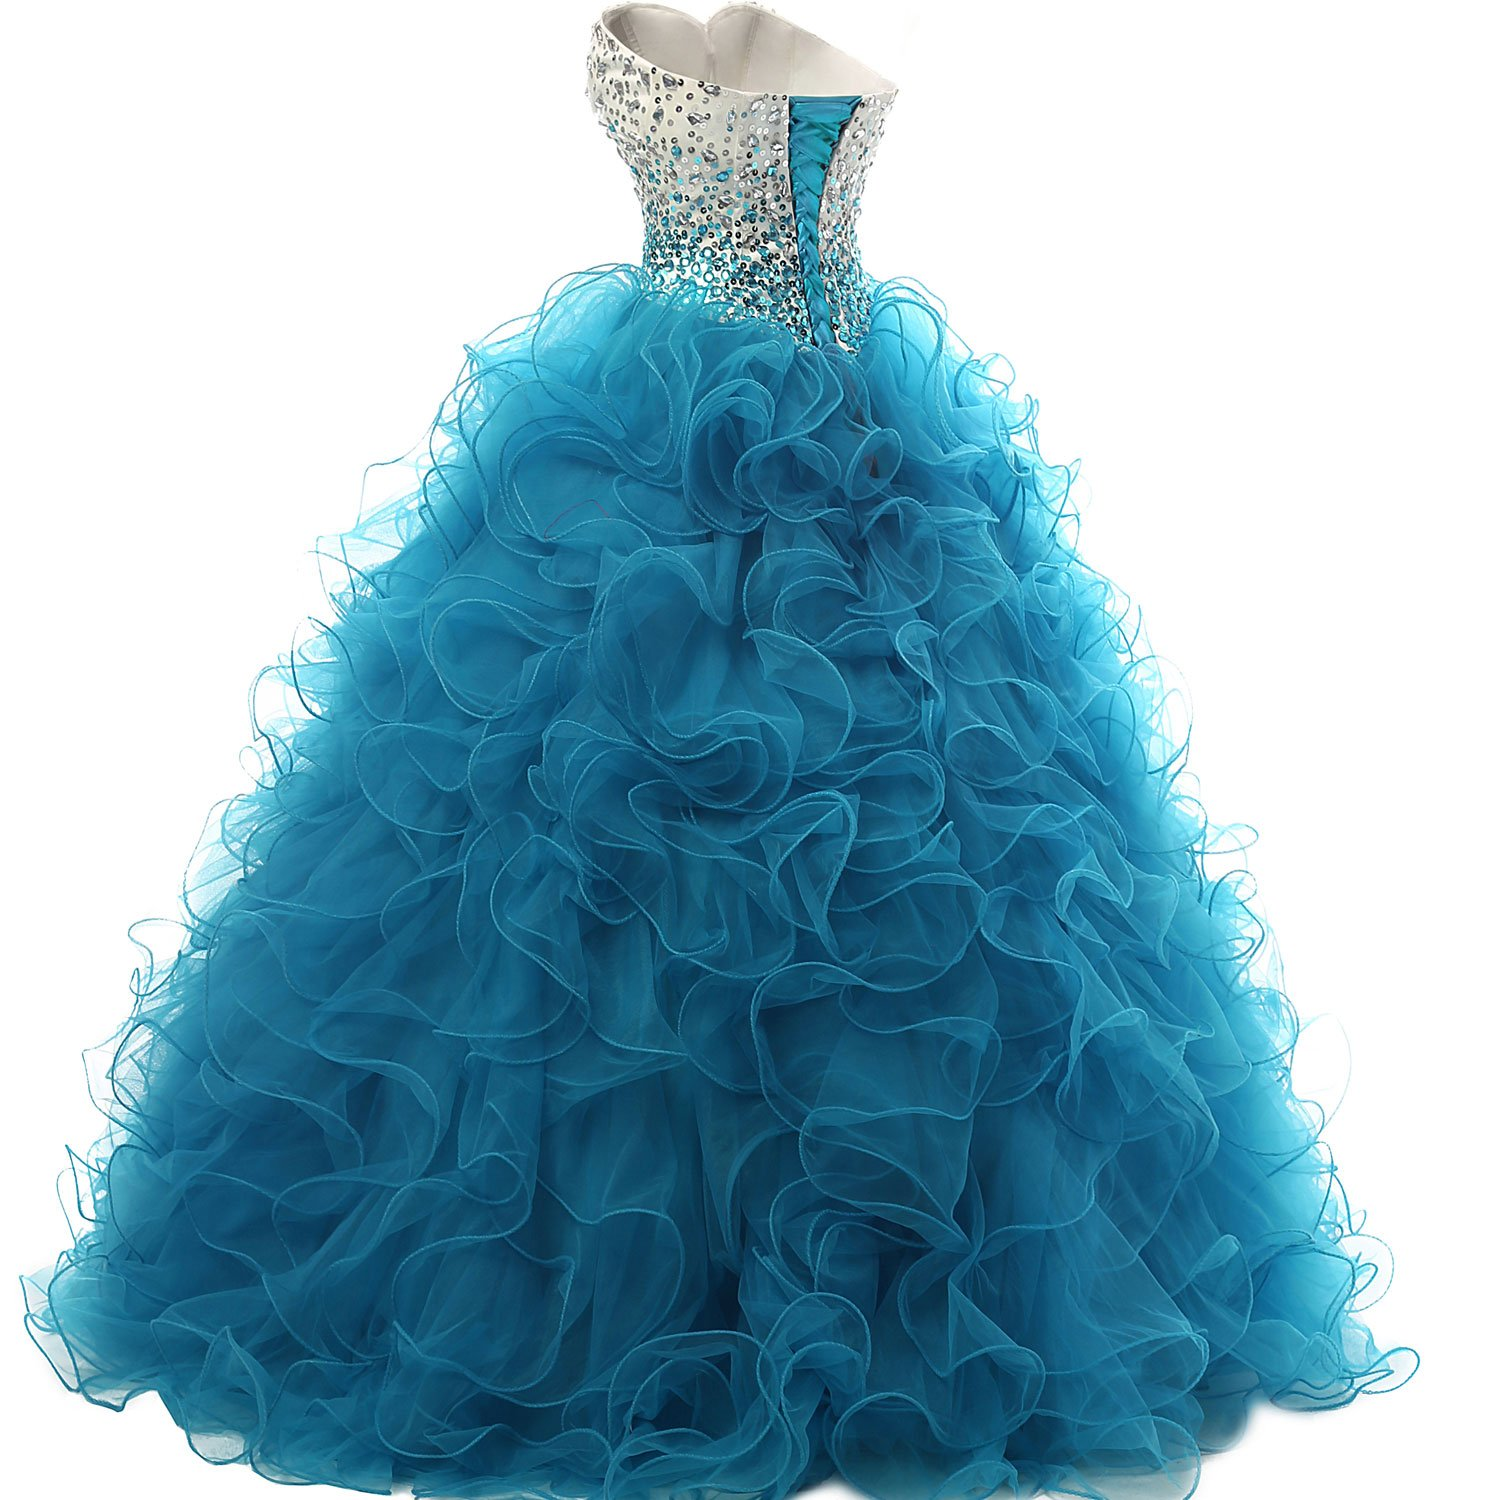 Dressytailor Ballgown Sweetheart Quinceanera Dress Prom Dress with Beading by Artie dress (Image #3)